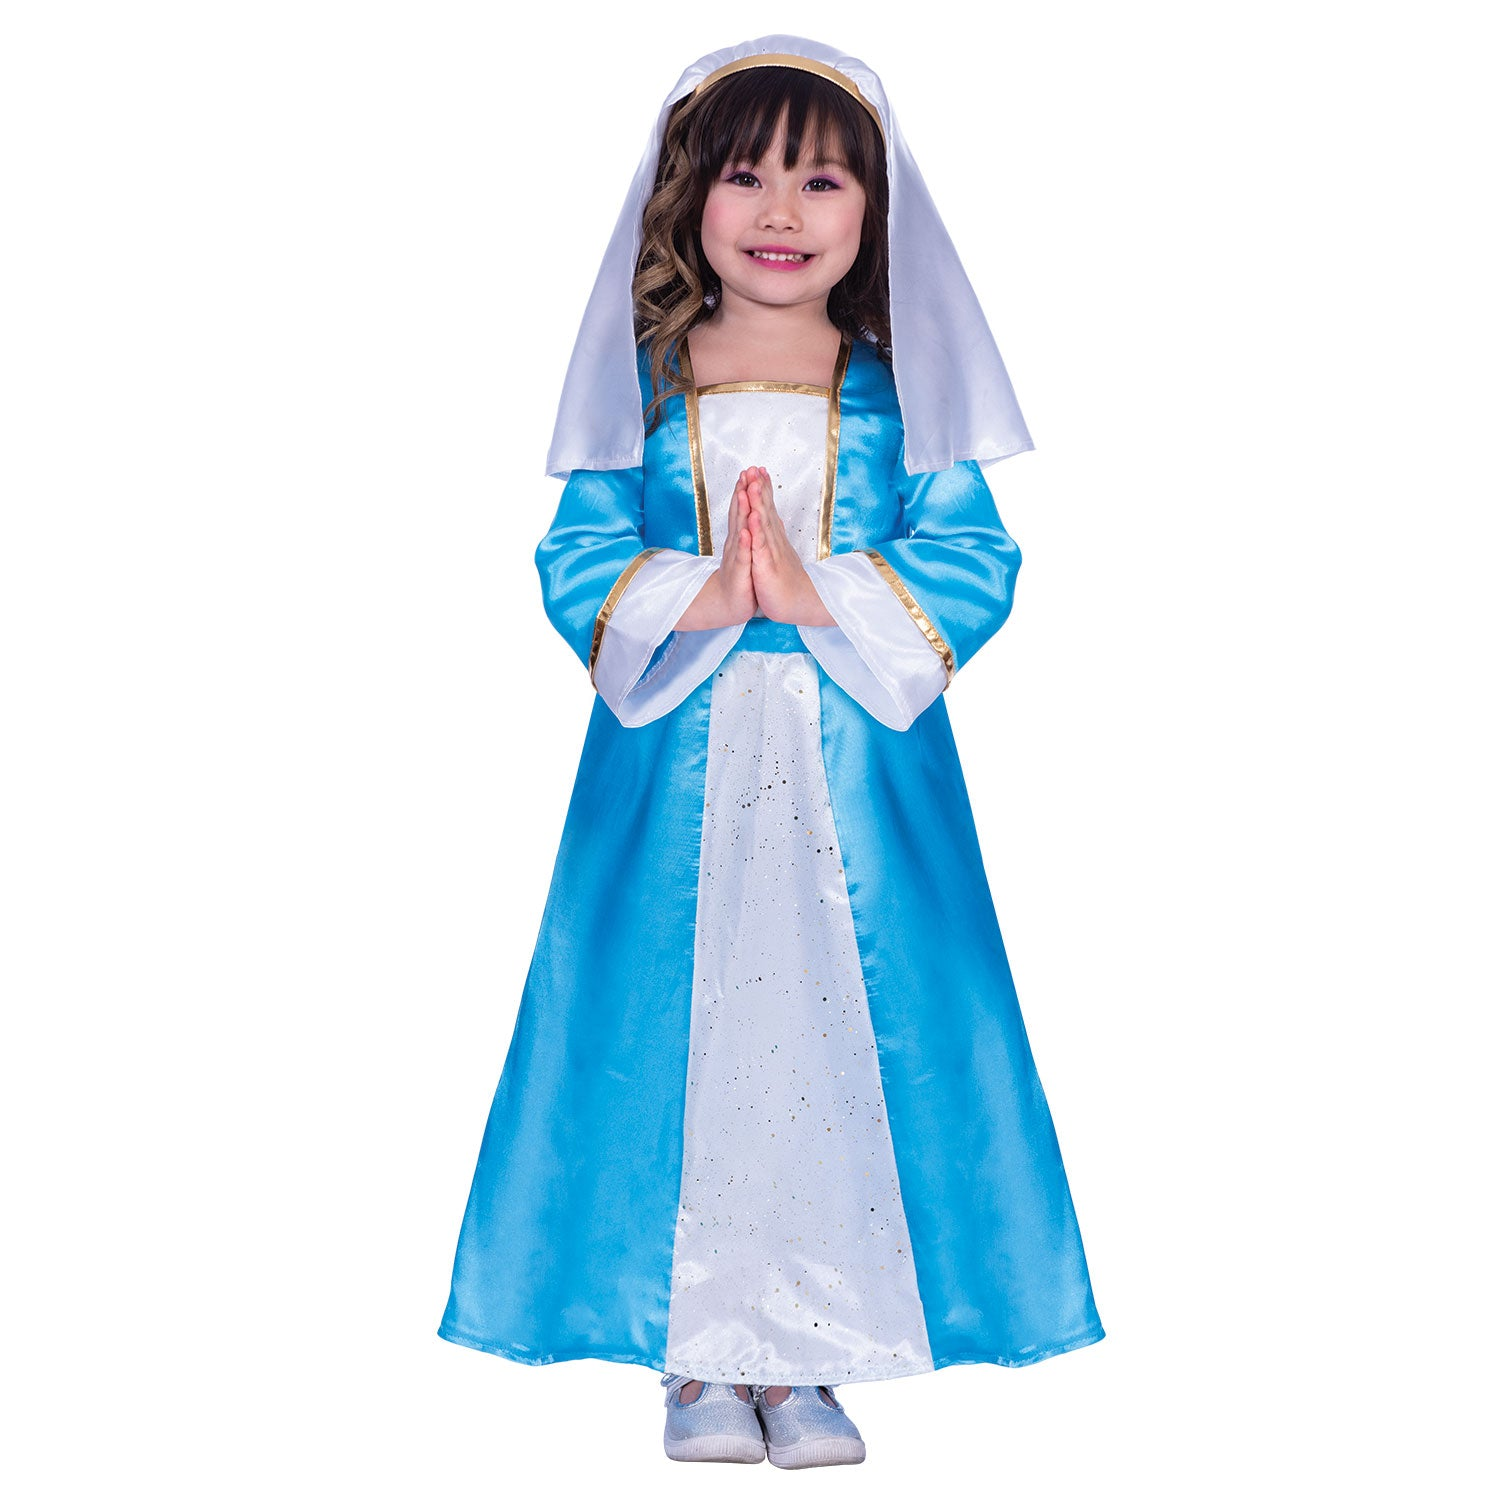 Child's Mary Costume